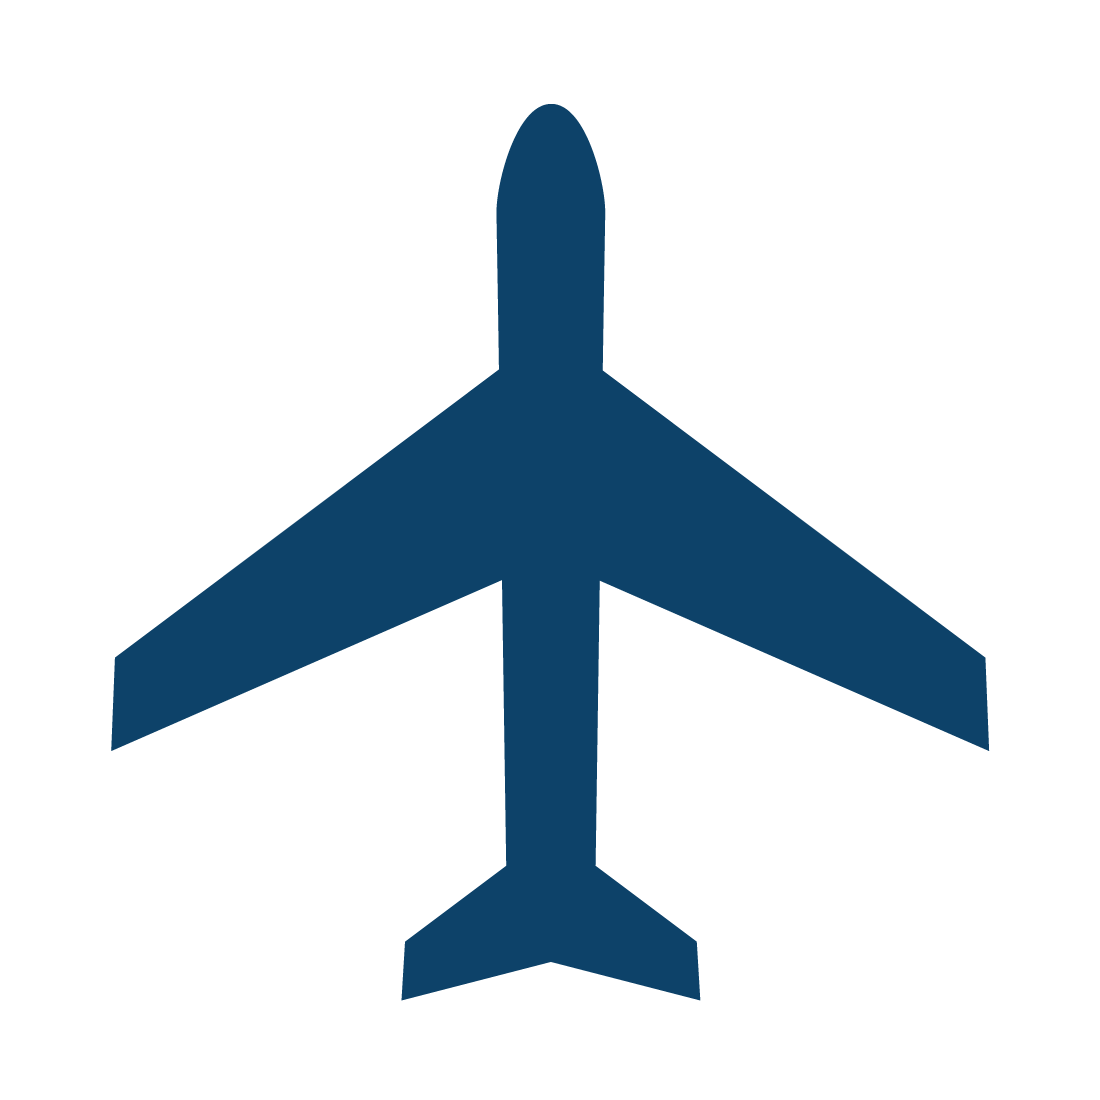 Social-Giphys_Airplane-Icon.png